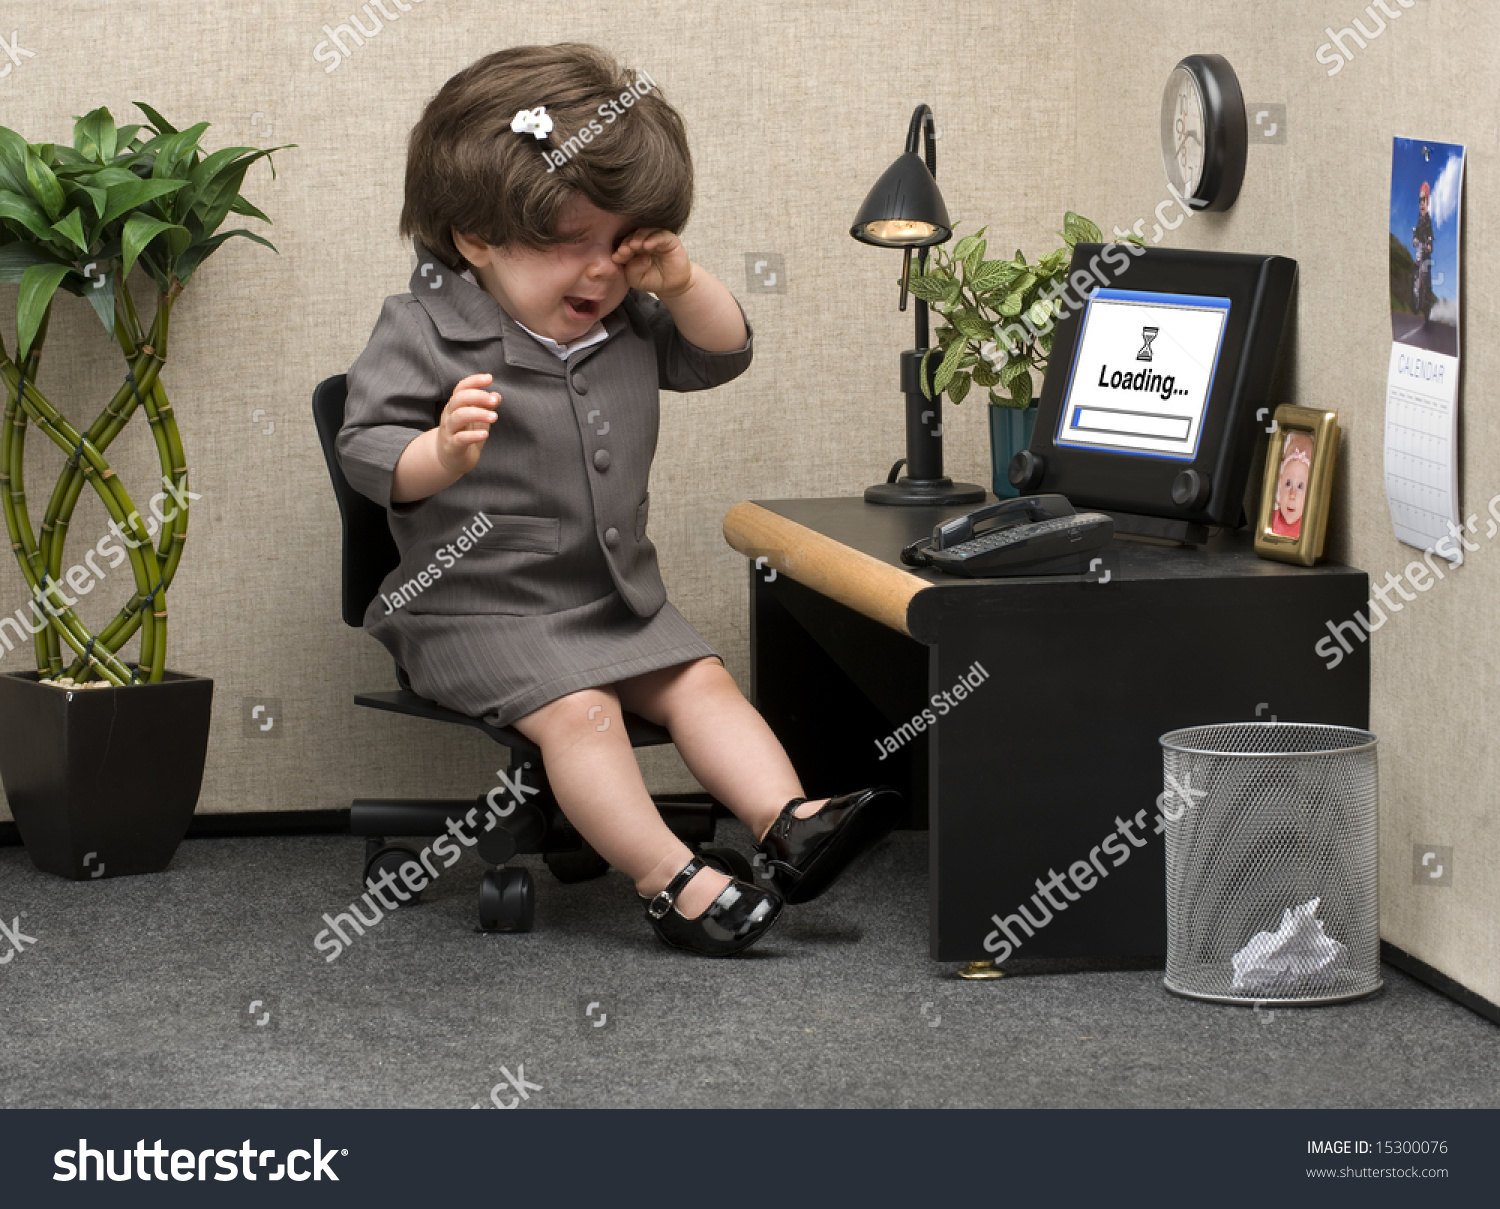 baby dressed professional office attire crying stock photo